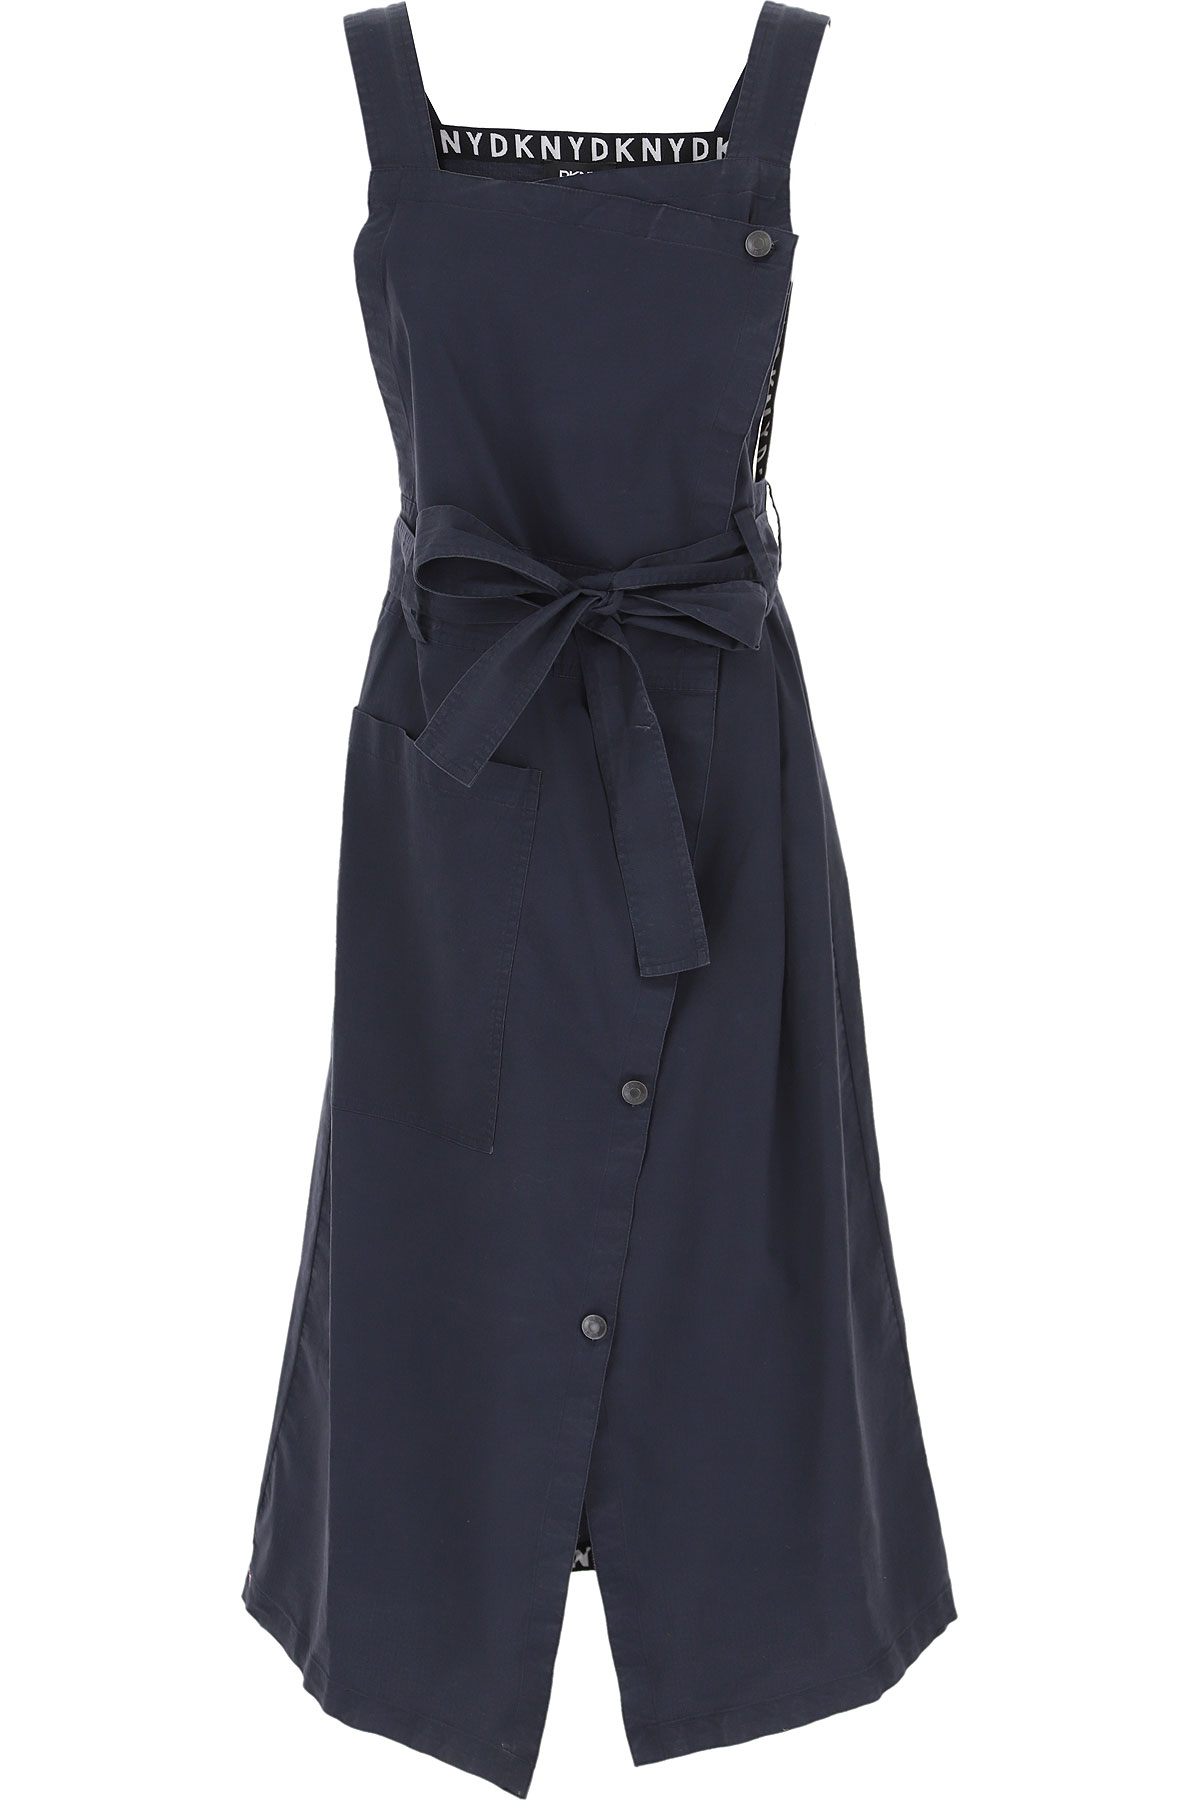 DKNY Dress for Women, Evening Cocktail Party On Sale, Blue Denim, Cotton, 2019, 4 6 8